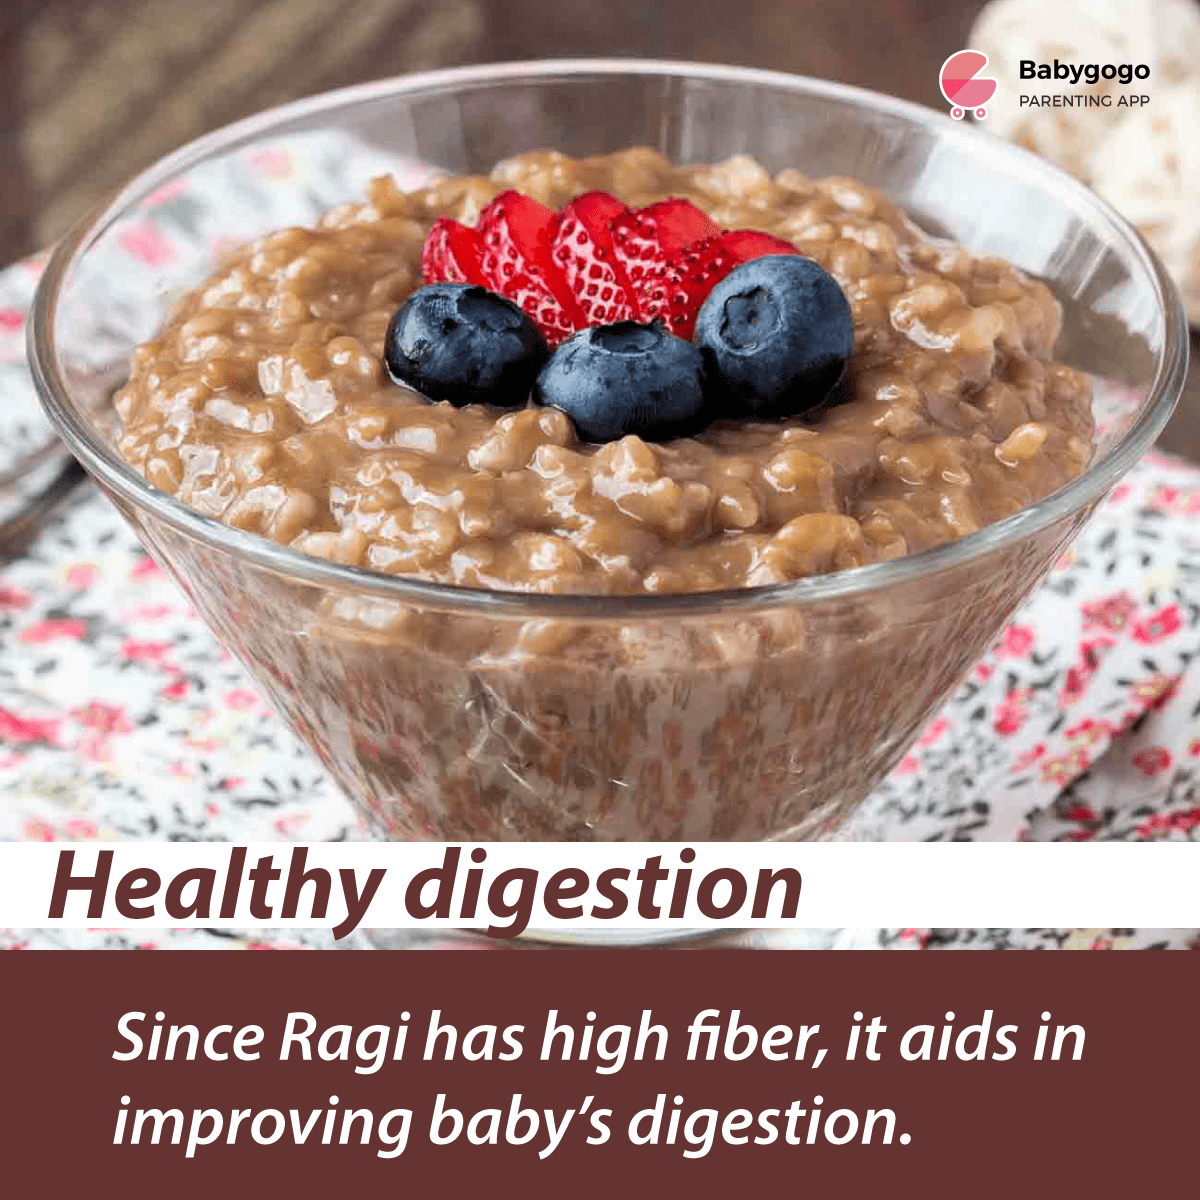 Ragi helps in healthy digestion